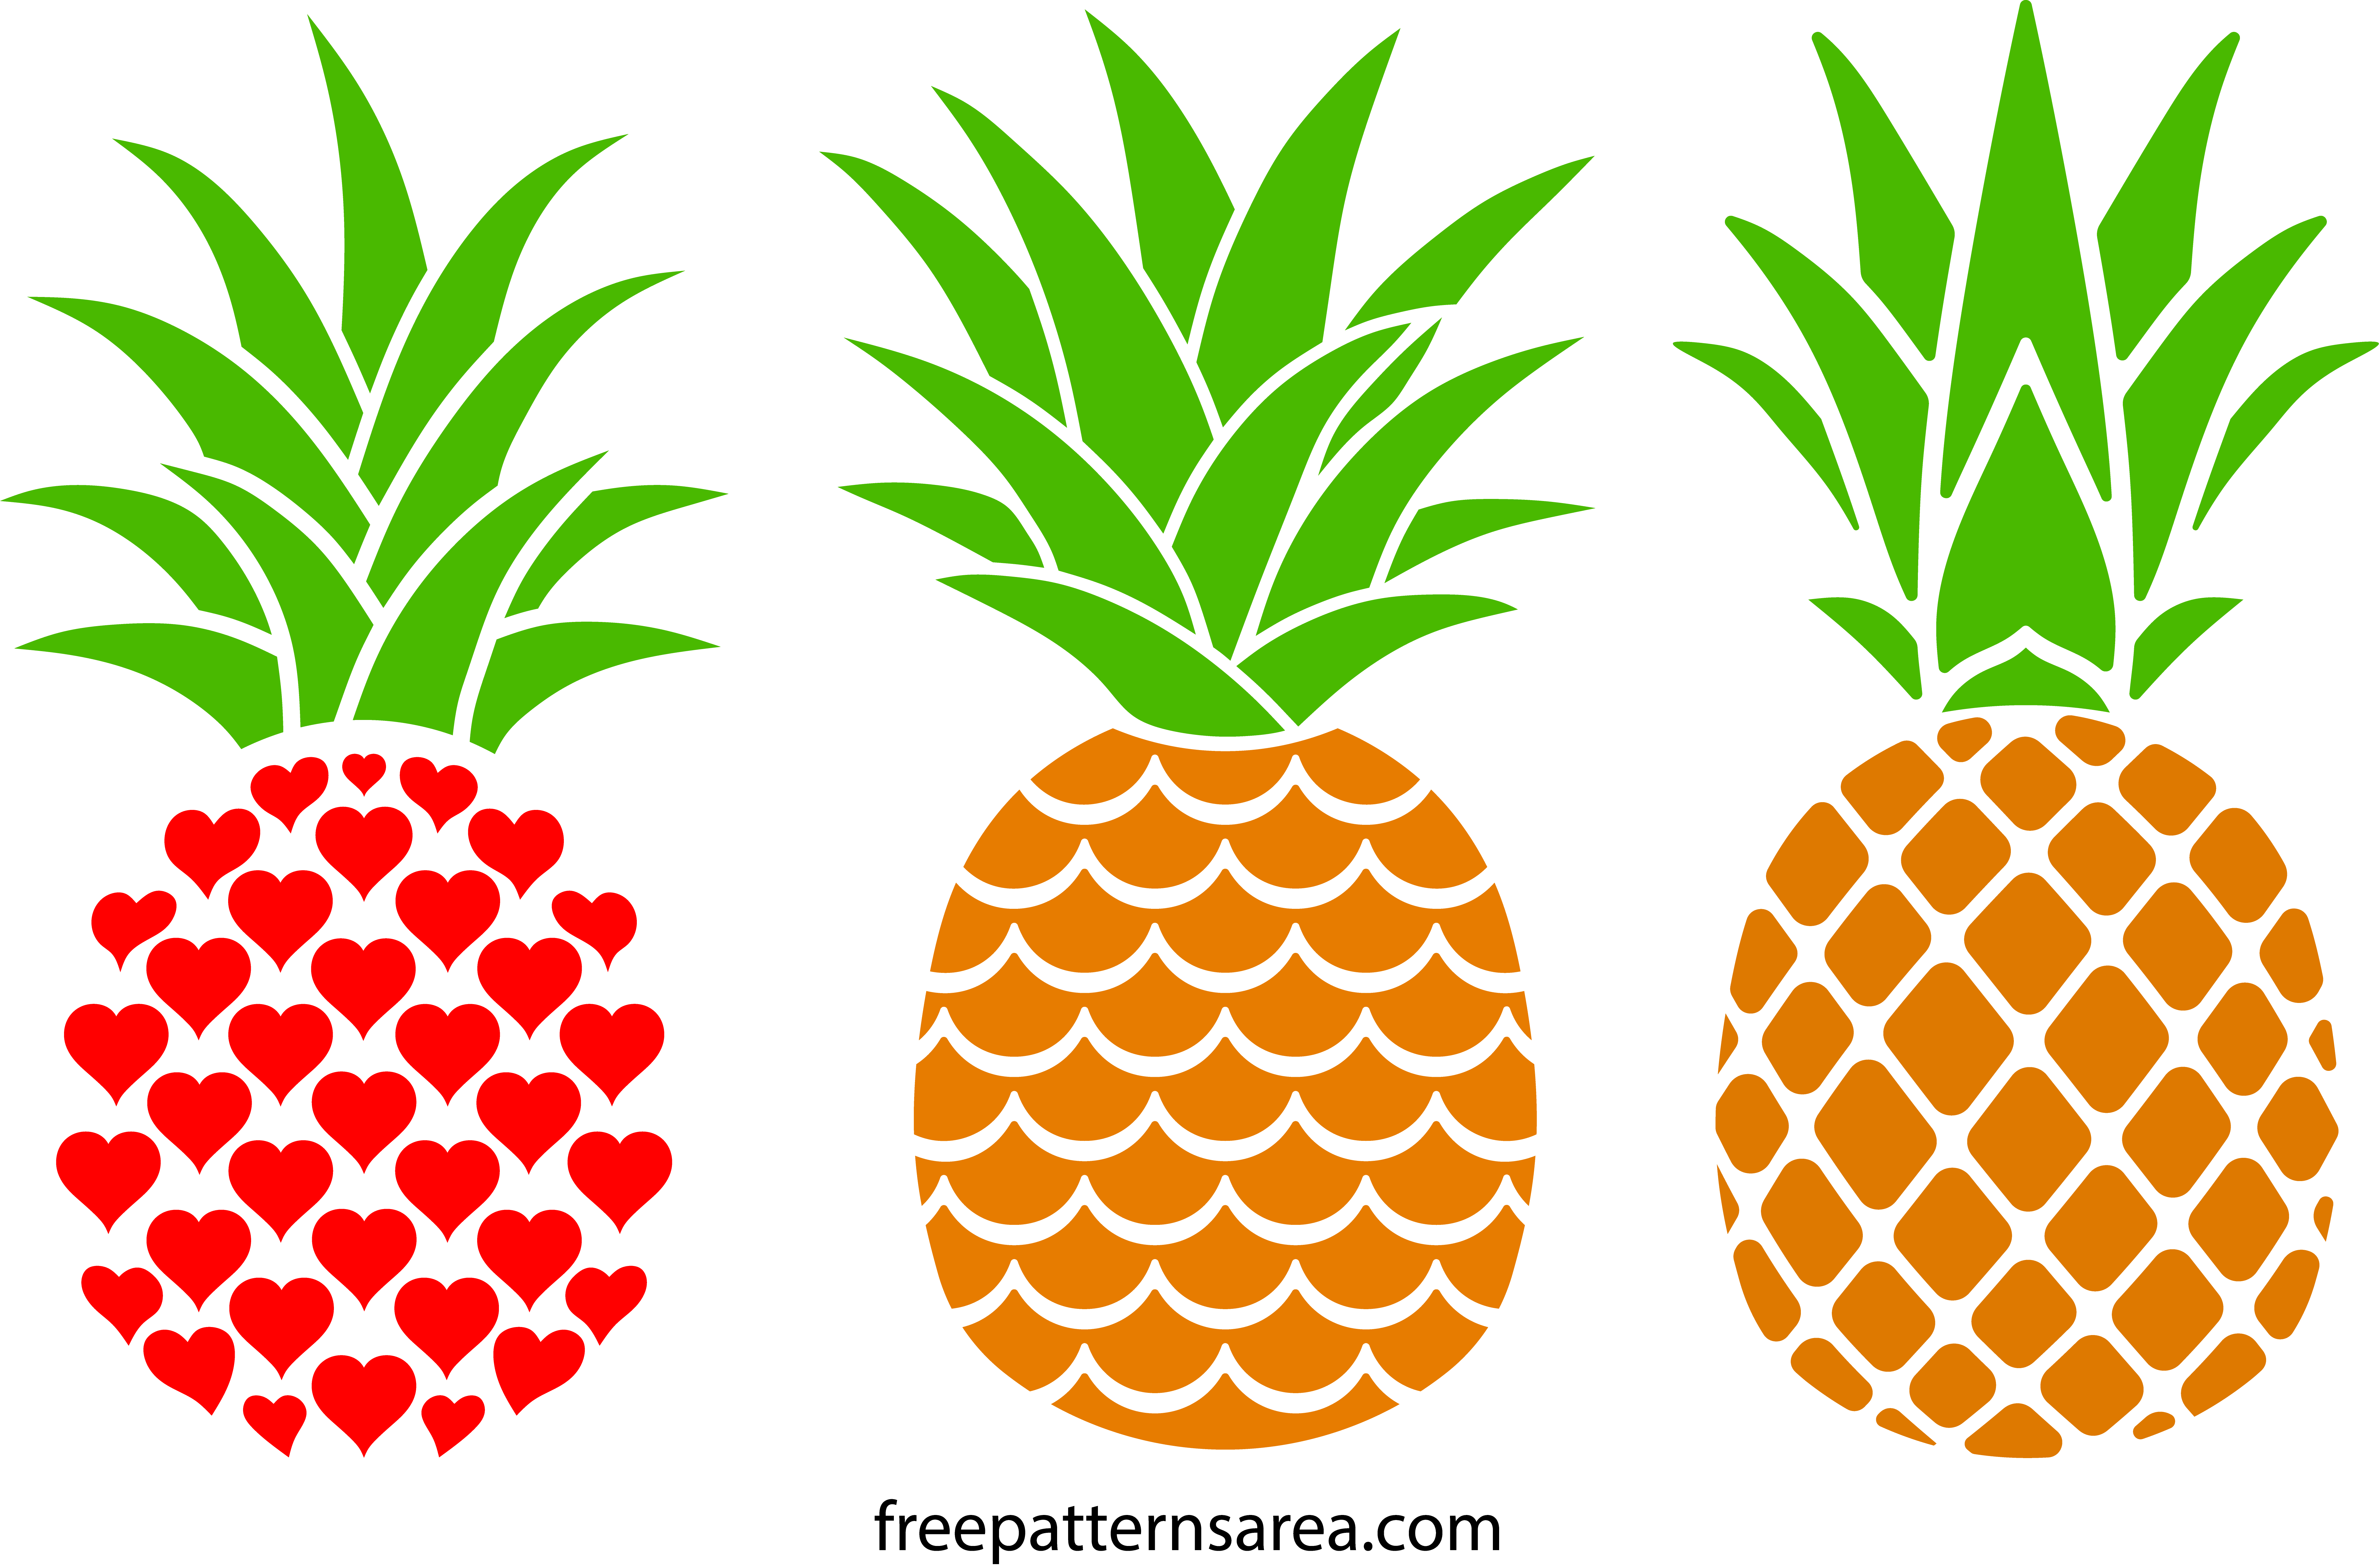 It's just an image of Pineapple Printable with regard to quote